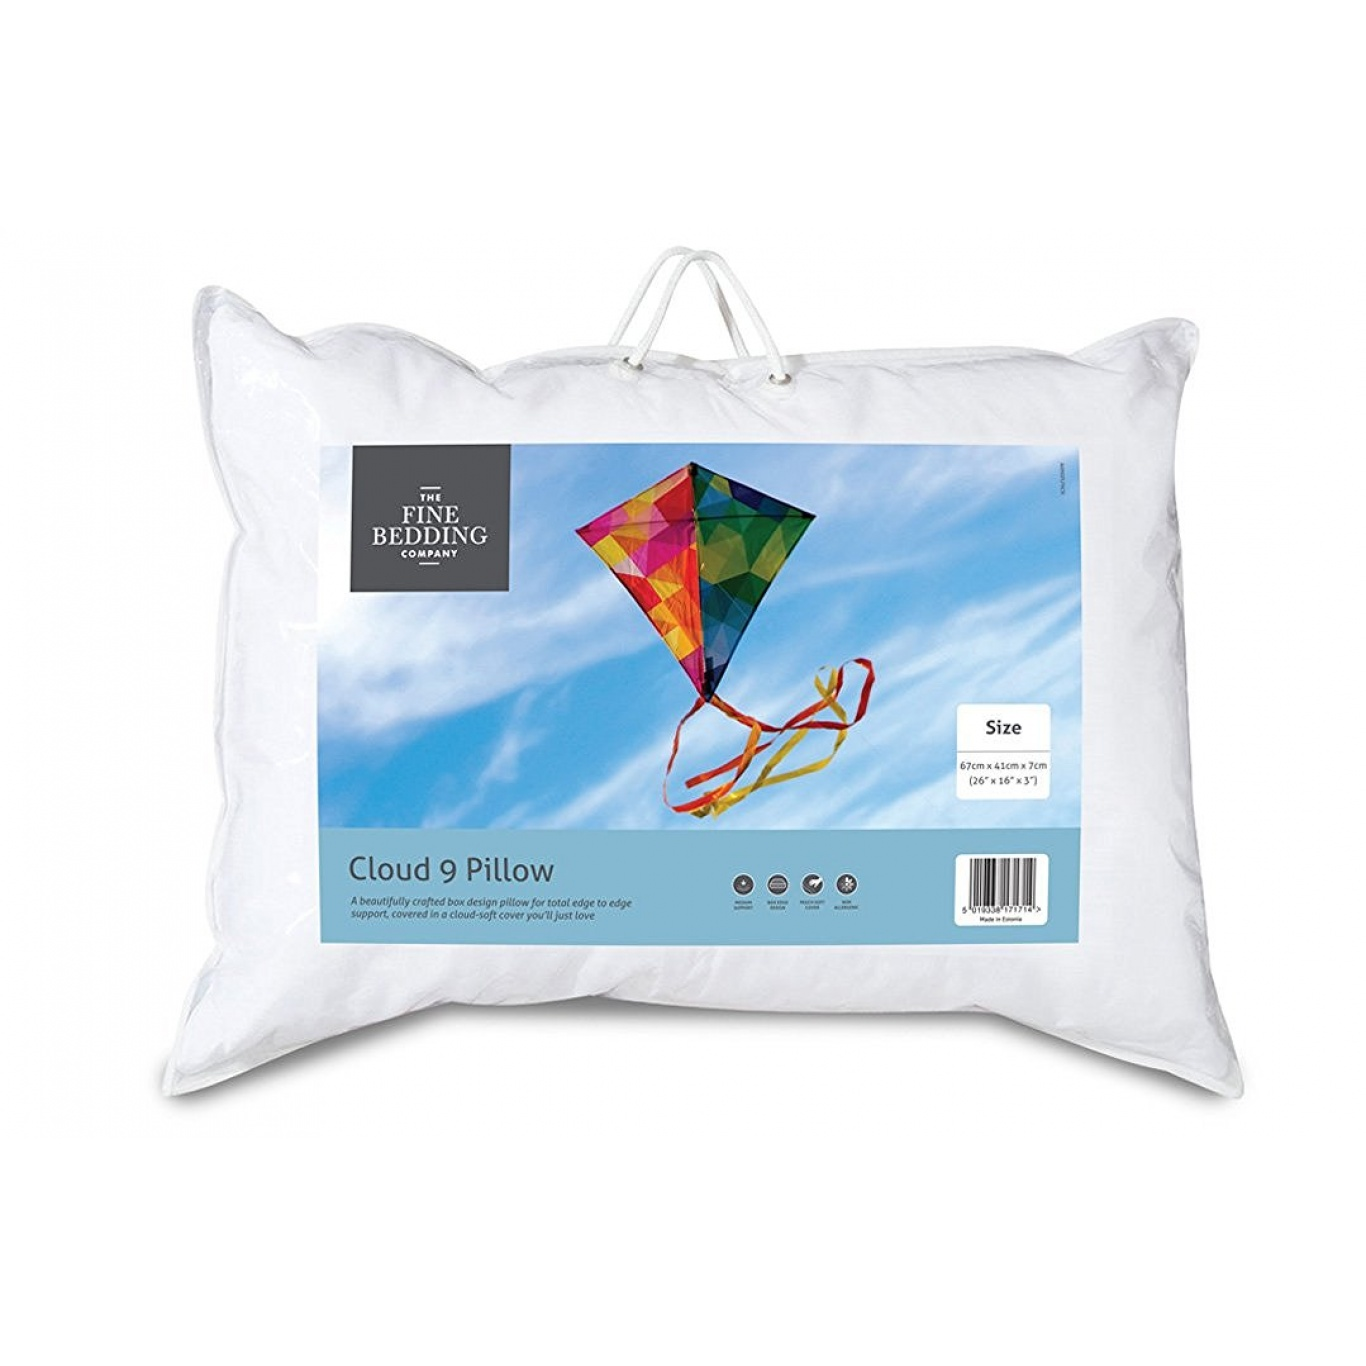 Image of Cloud 9 Pillow